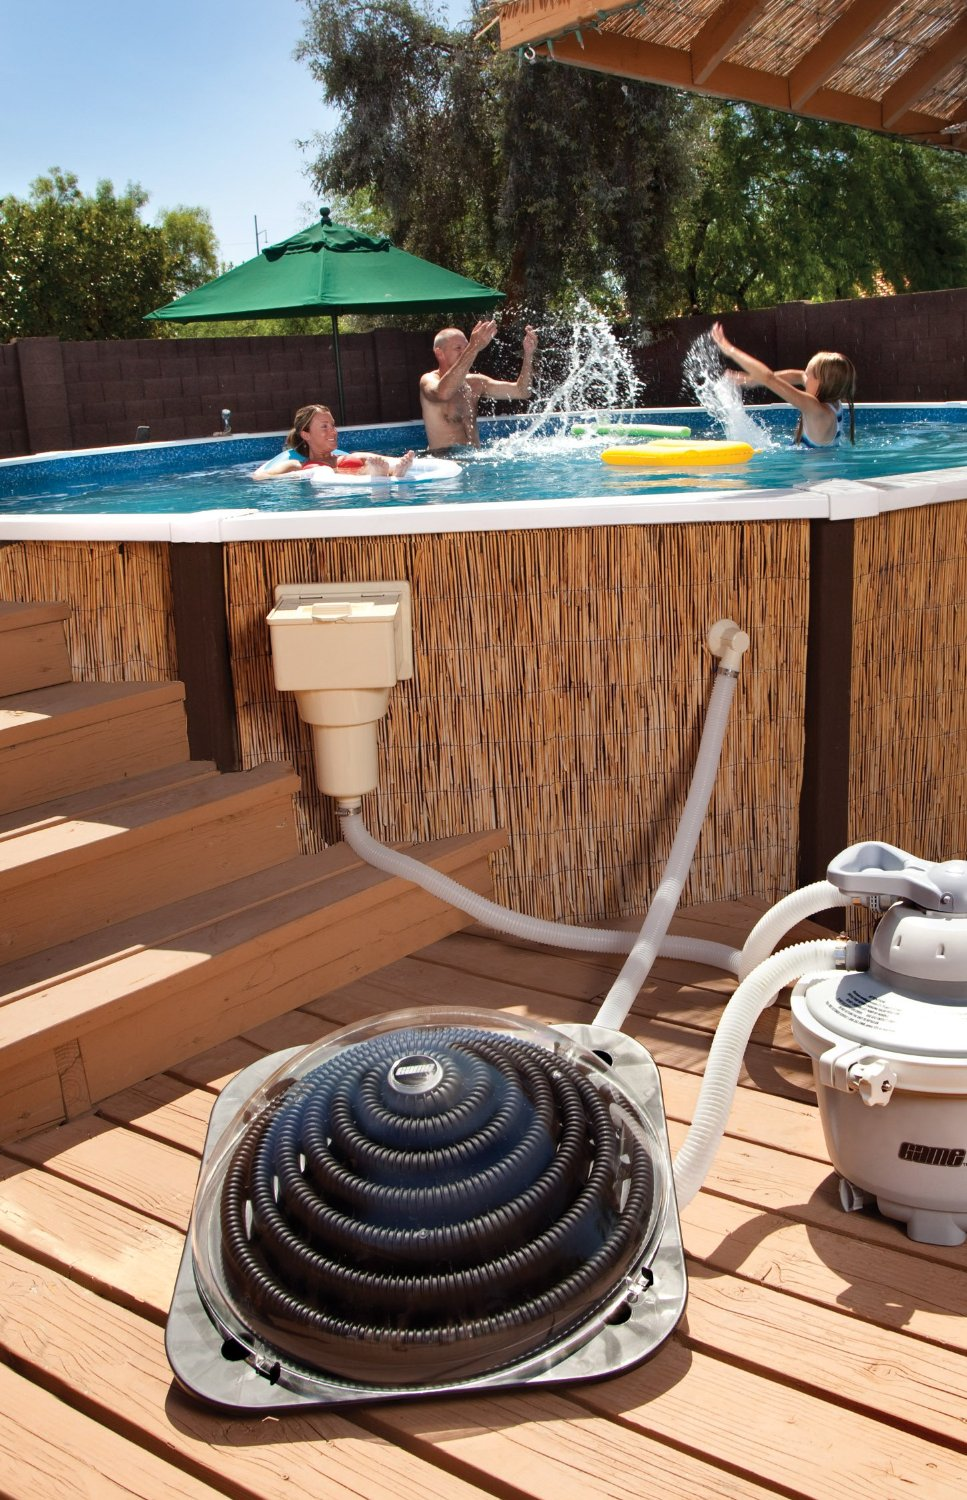 4512 Solarpro Xd1 Solar Heater For Above Ground Pools Review